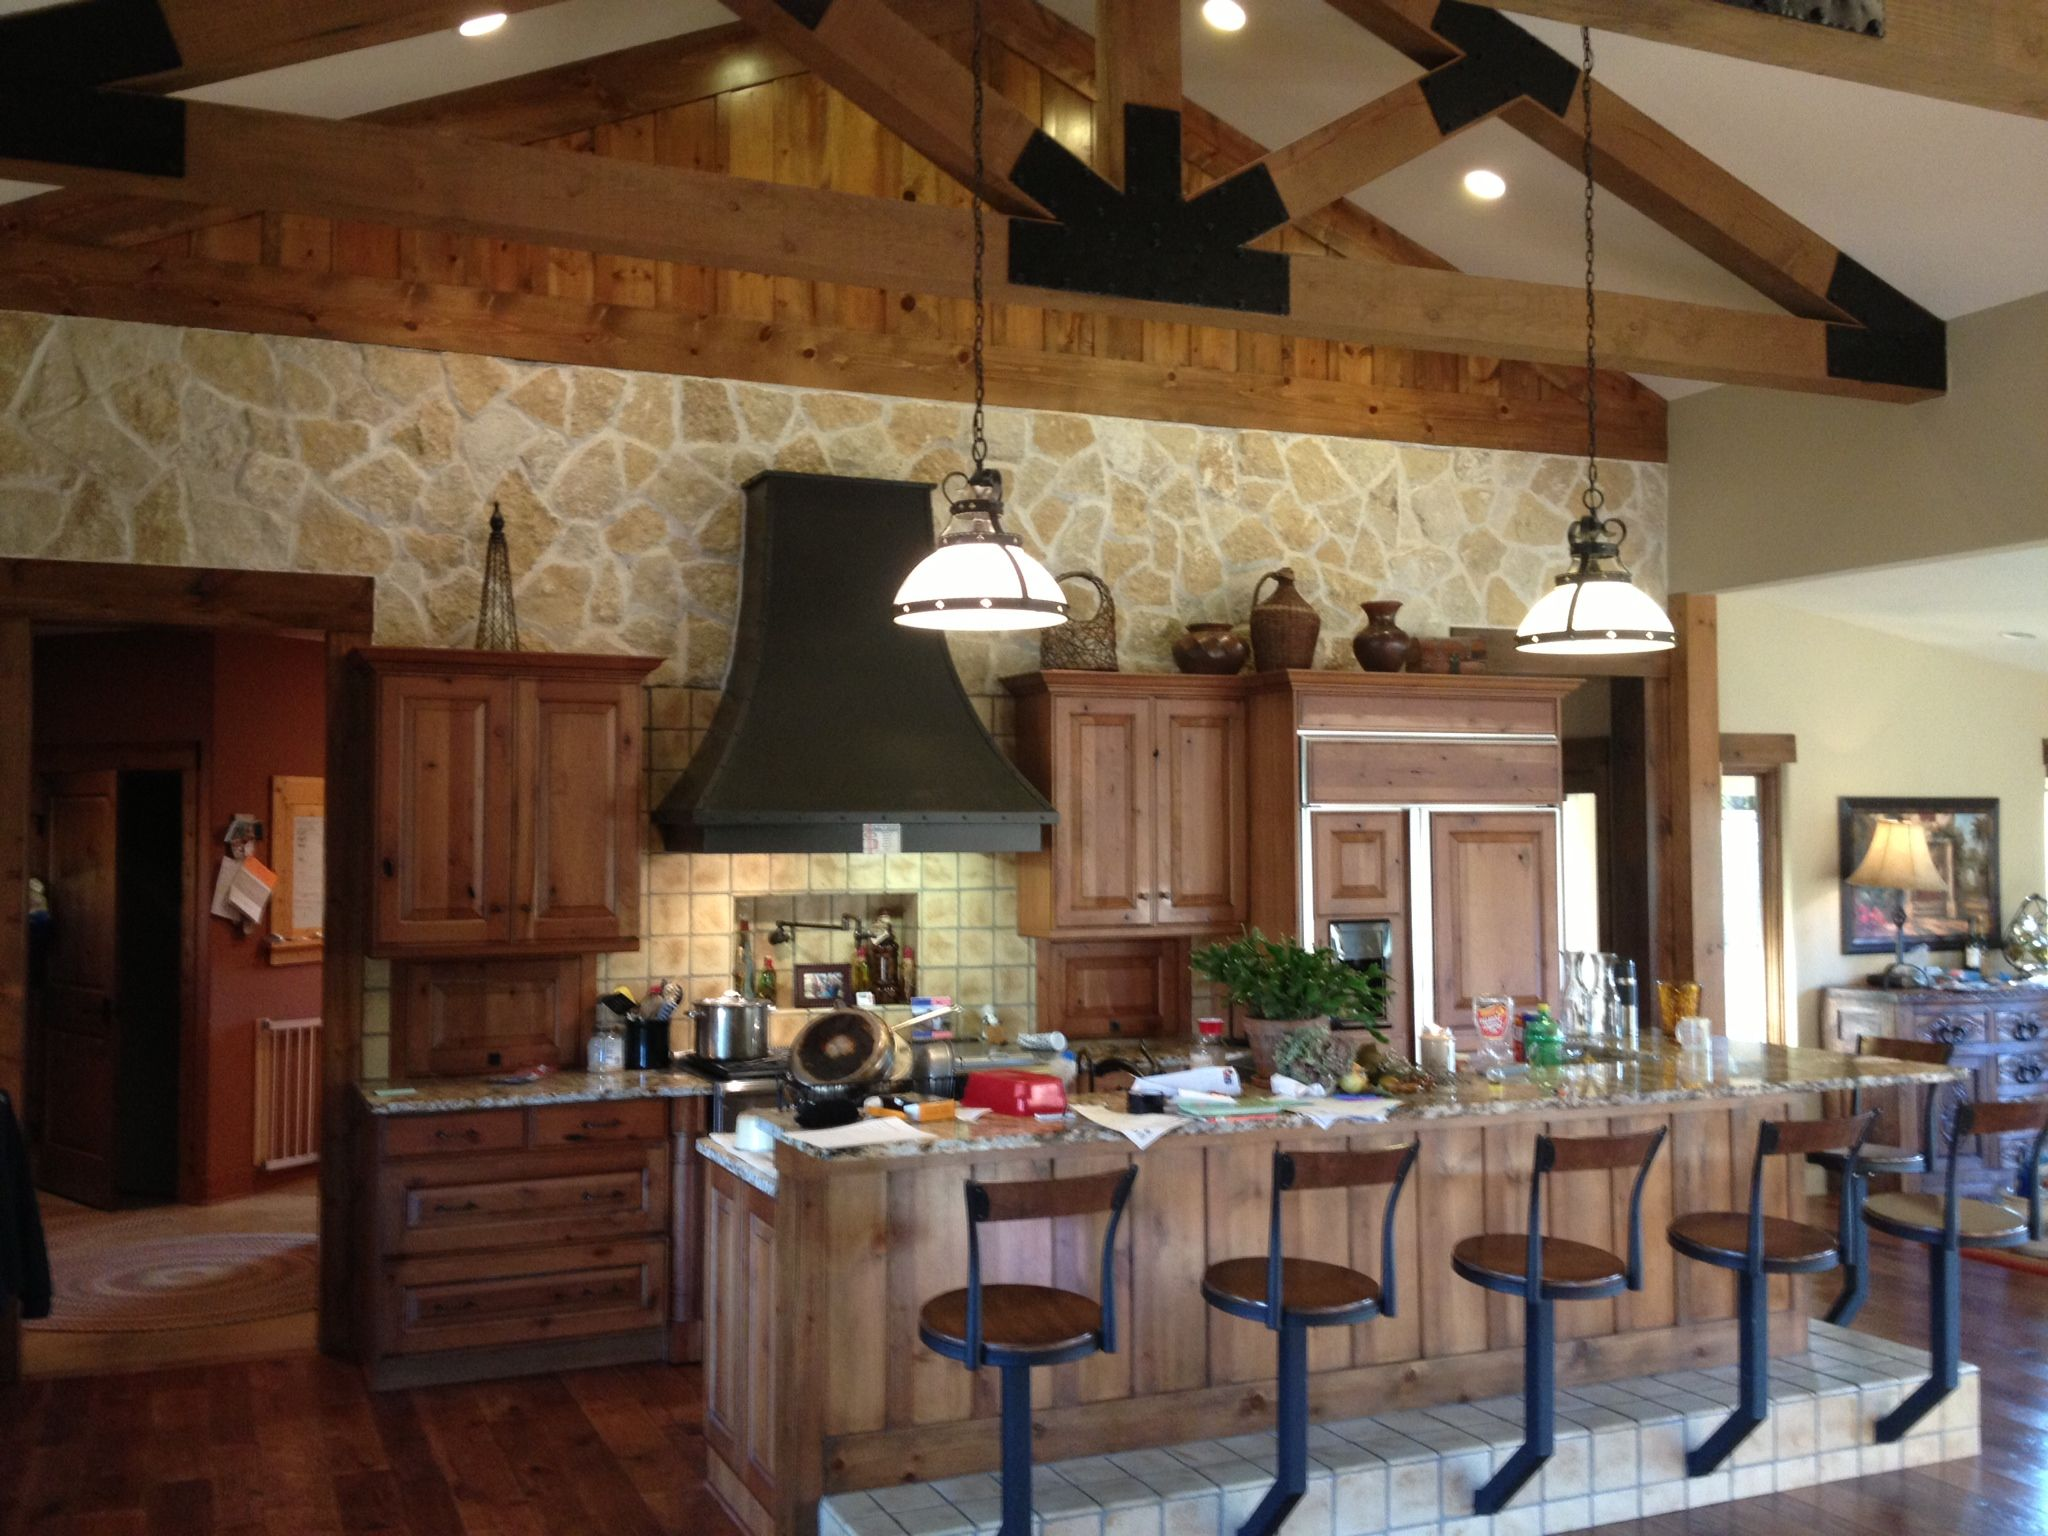 Texas Ranch Inspired Kitchen Kitchen Decor Decor Kitchen Projects